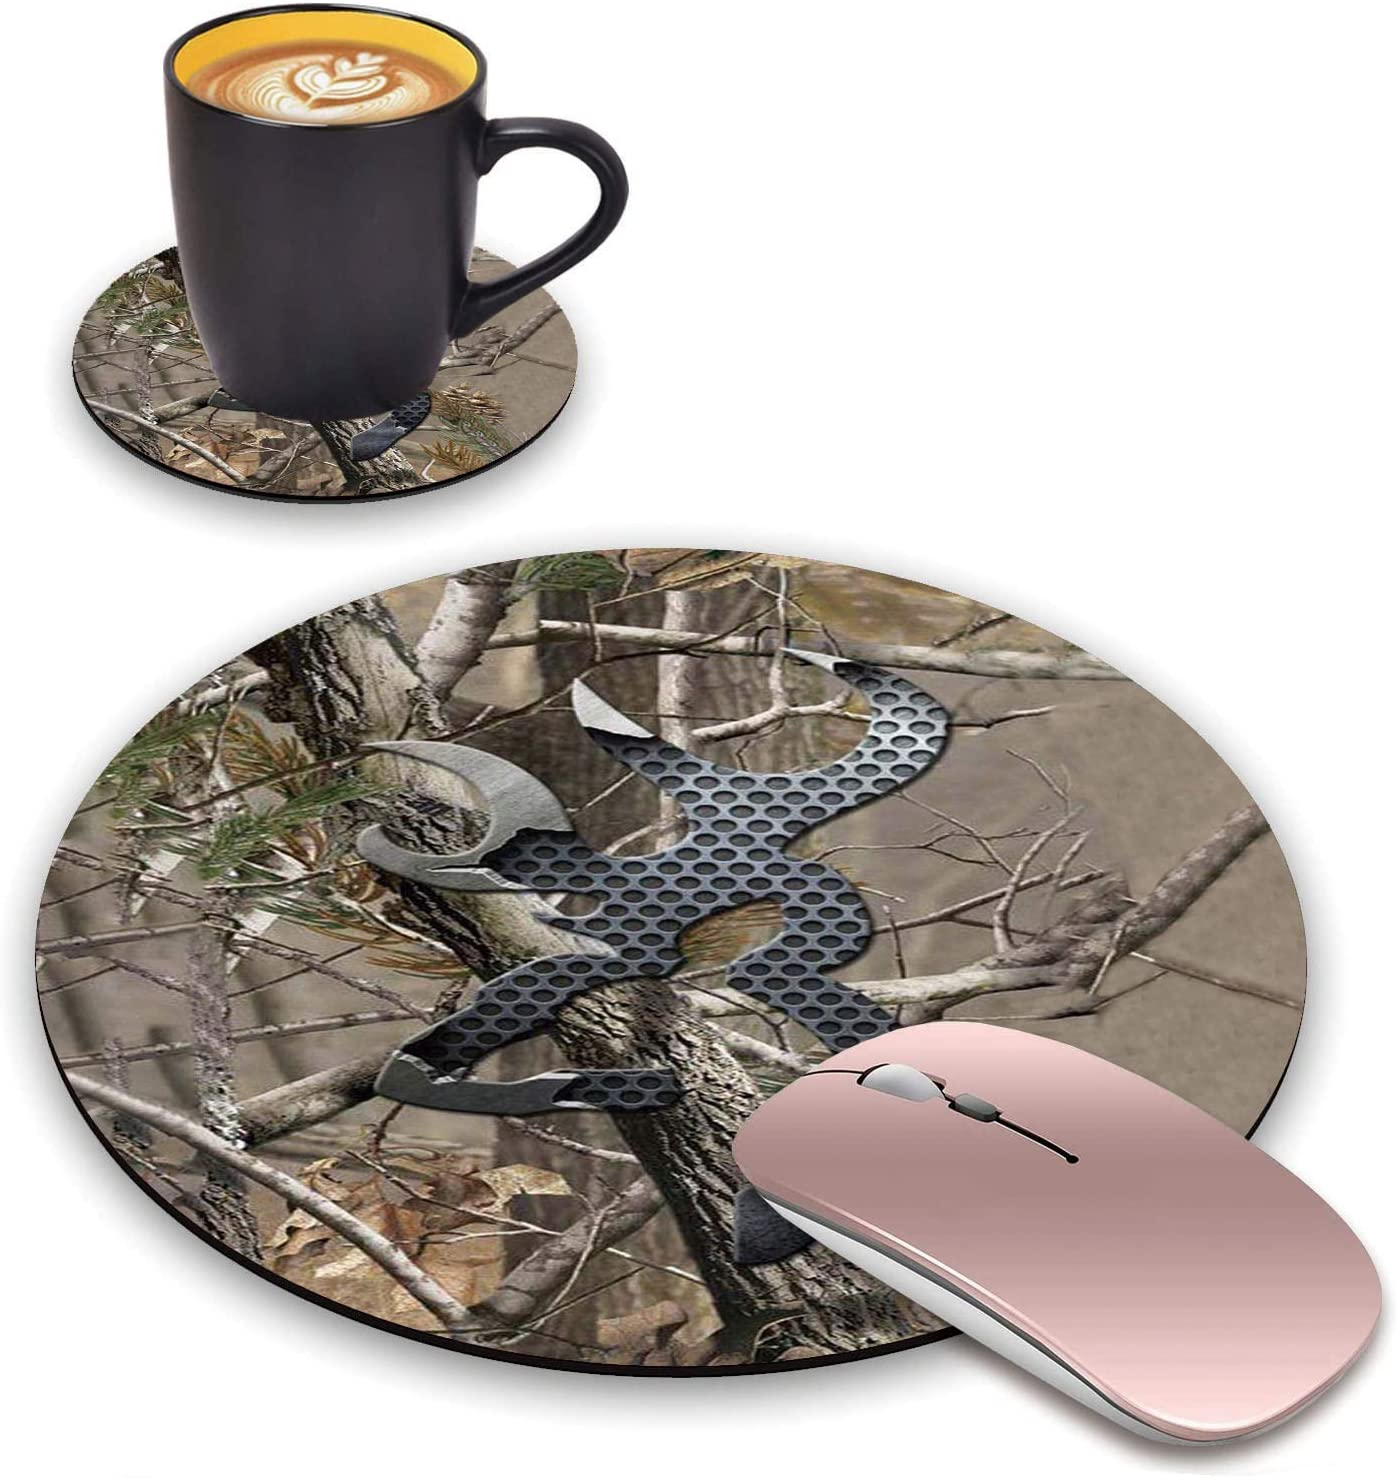 ChaTham Round Mouse Pad with Coasters Set, Jungle Camo Mouse Pad, Non-Slip Rubber Base Round Mouse Pads for Laptop Compute Working Home Office Accessories